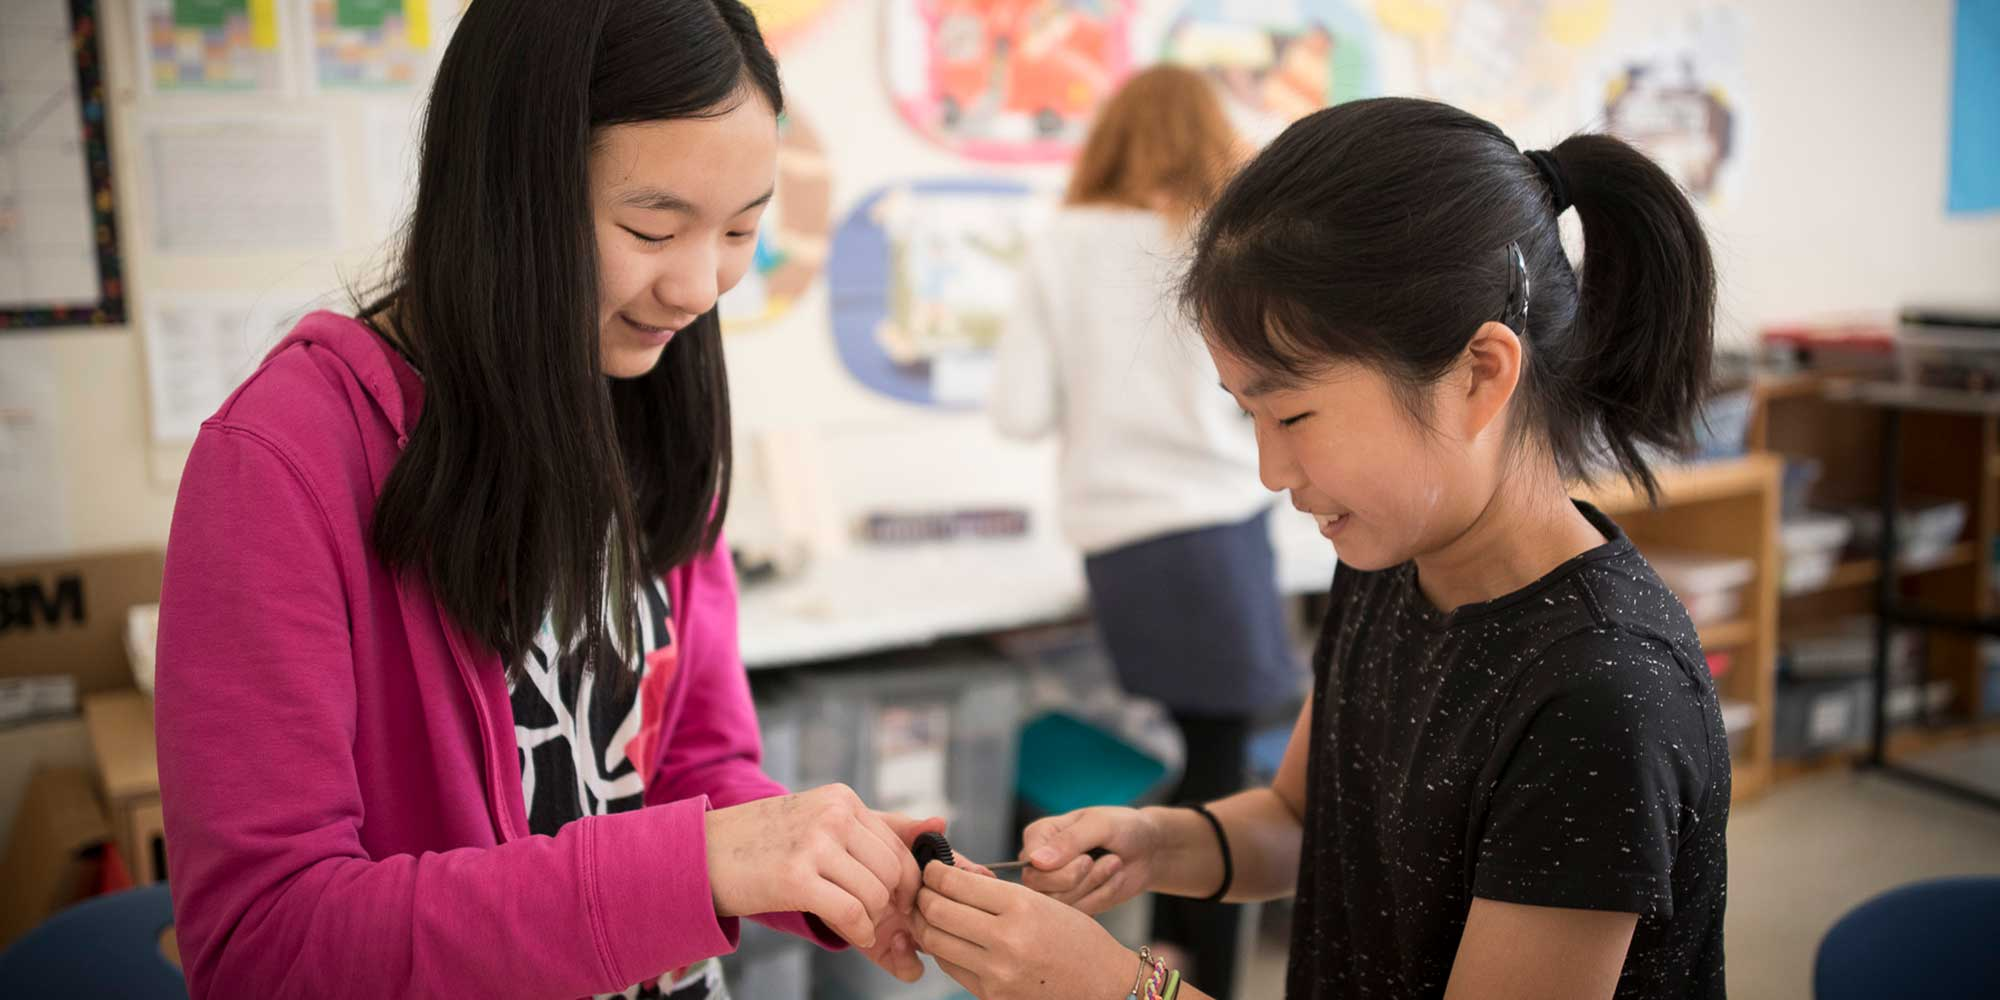 Two girls work on their solar car project